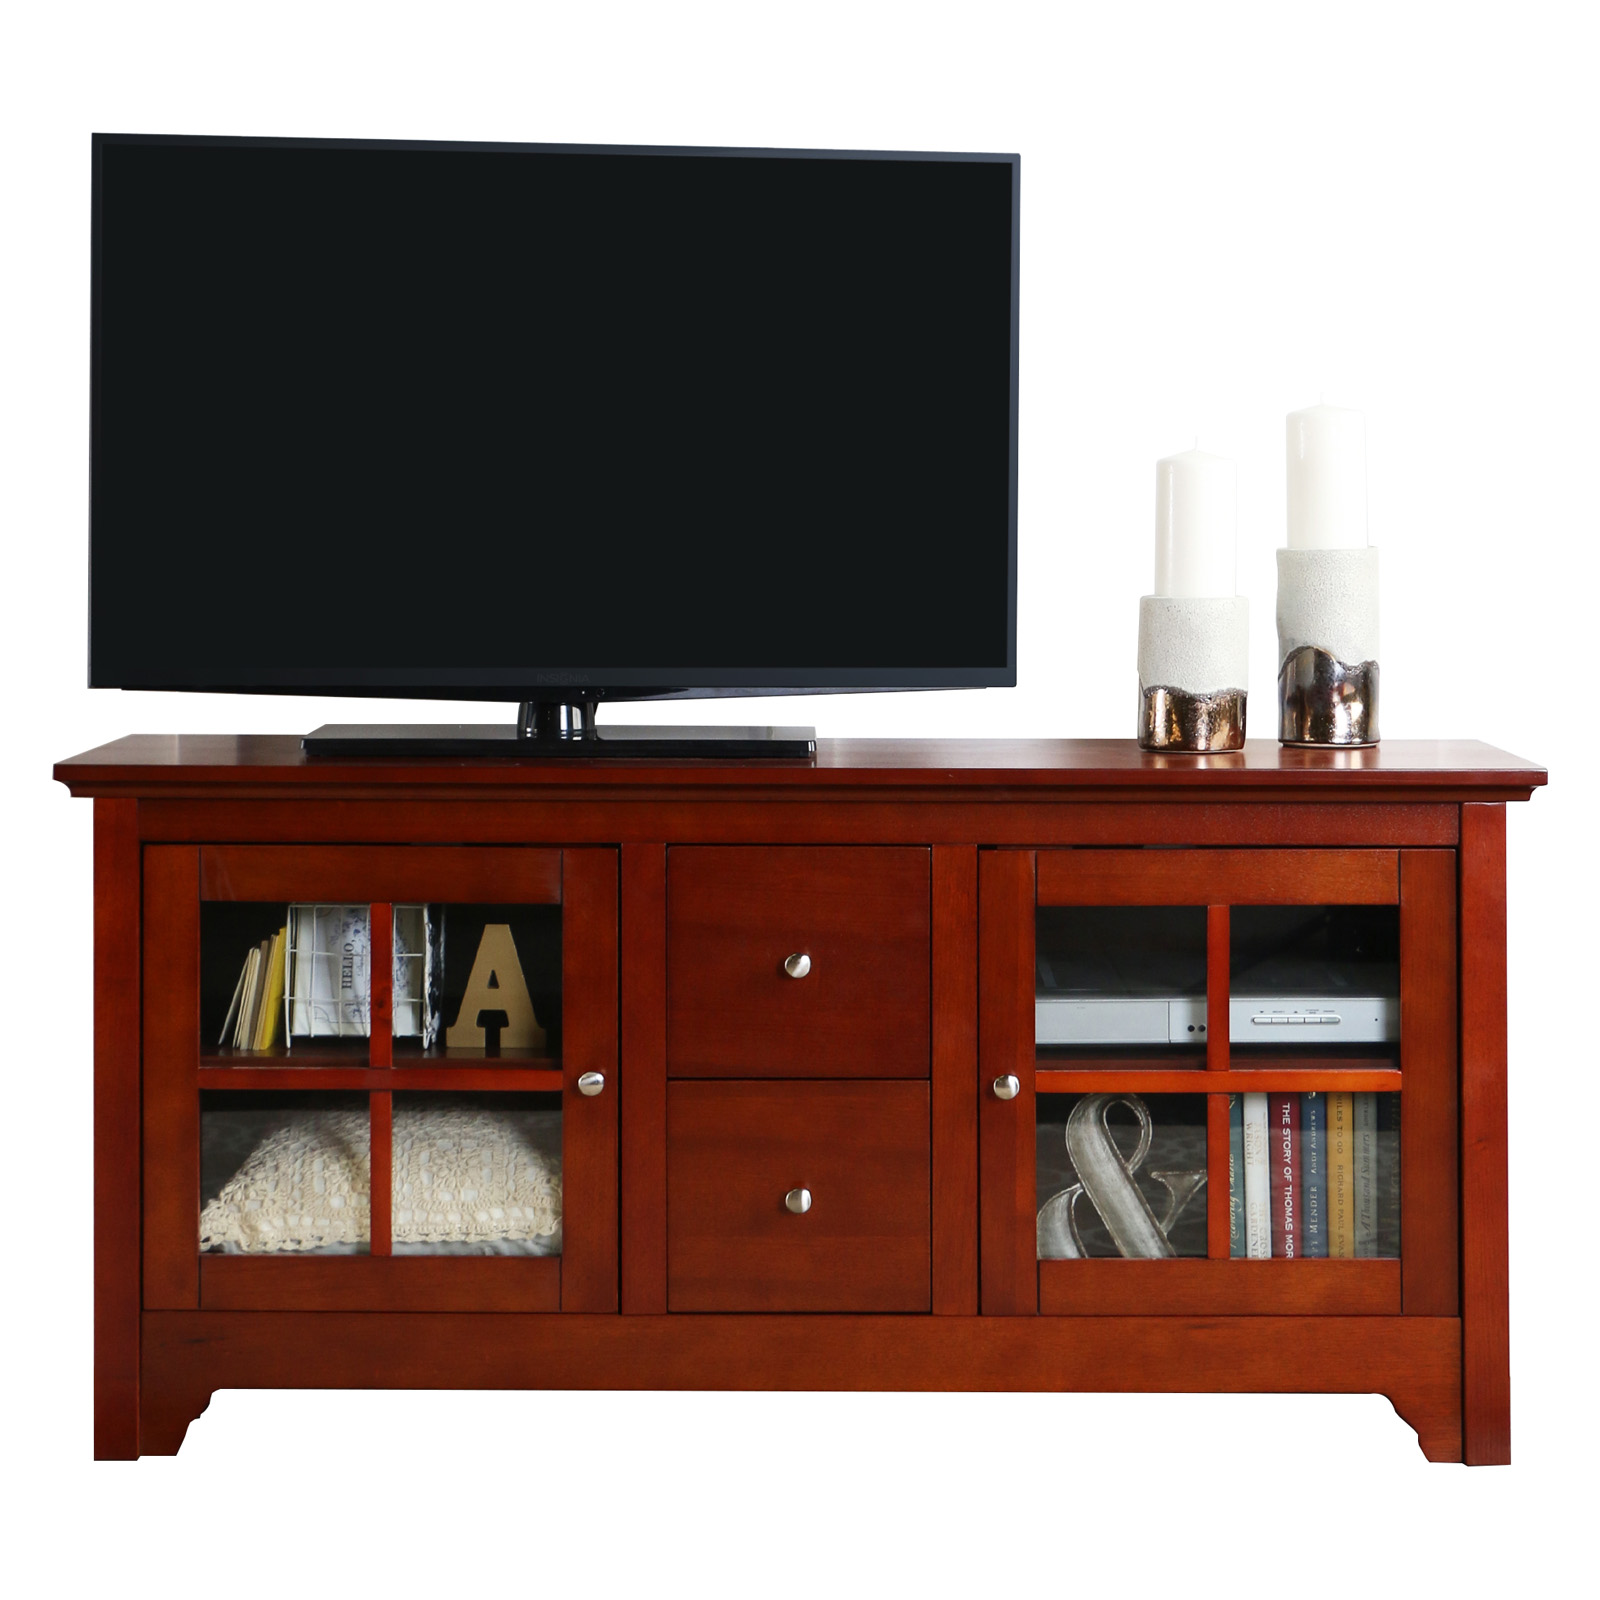 Very Impressive portraiture of  Wood Console with Drawers Walnut Brown TV Stands at Hayneedle with #B43808 color and 1600x1600 pixels